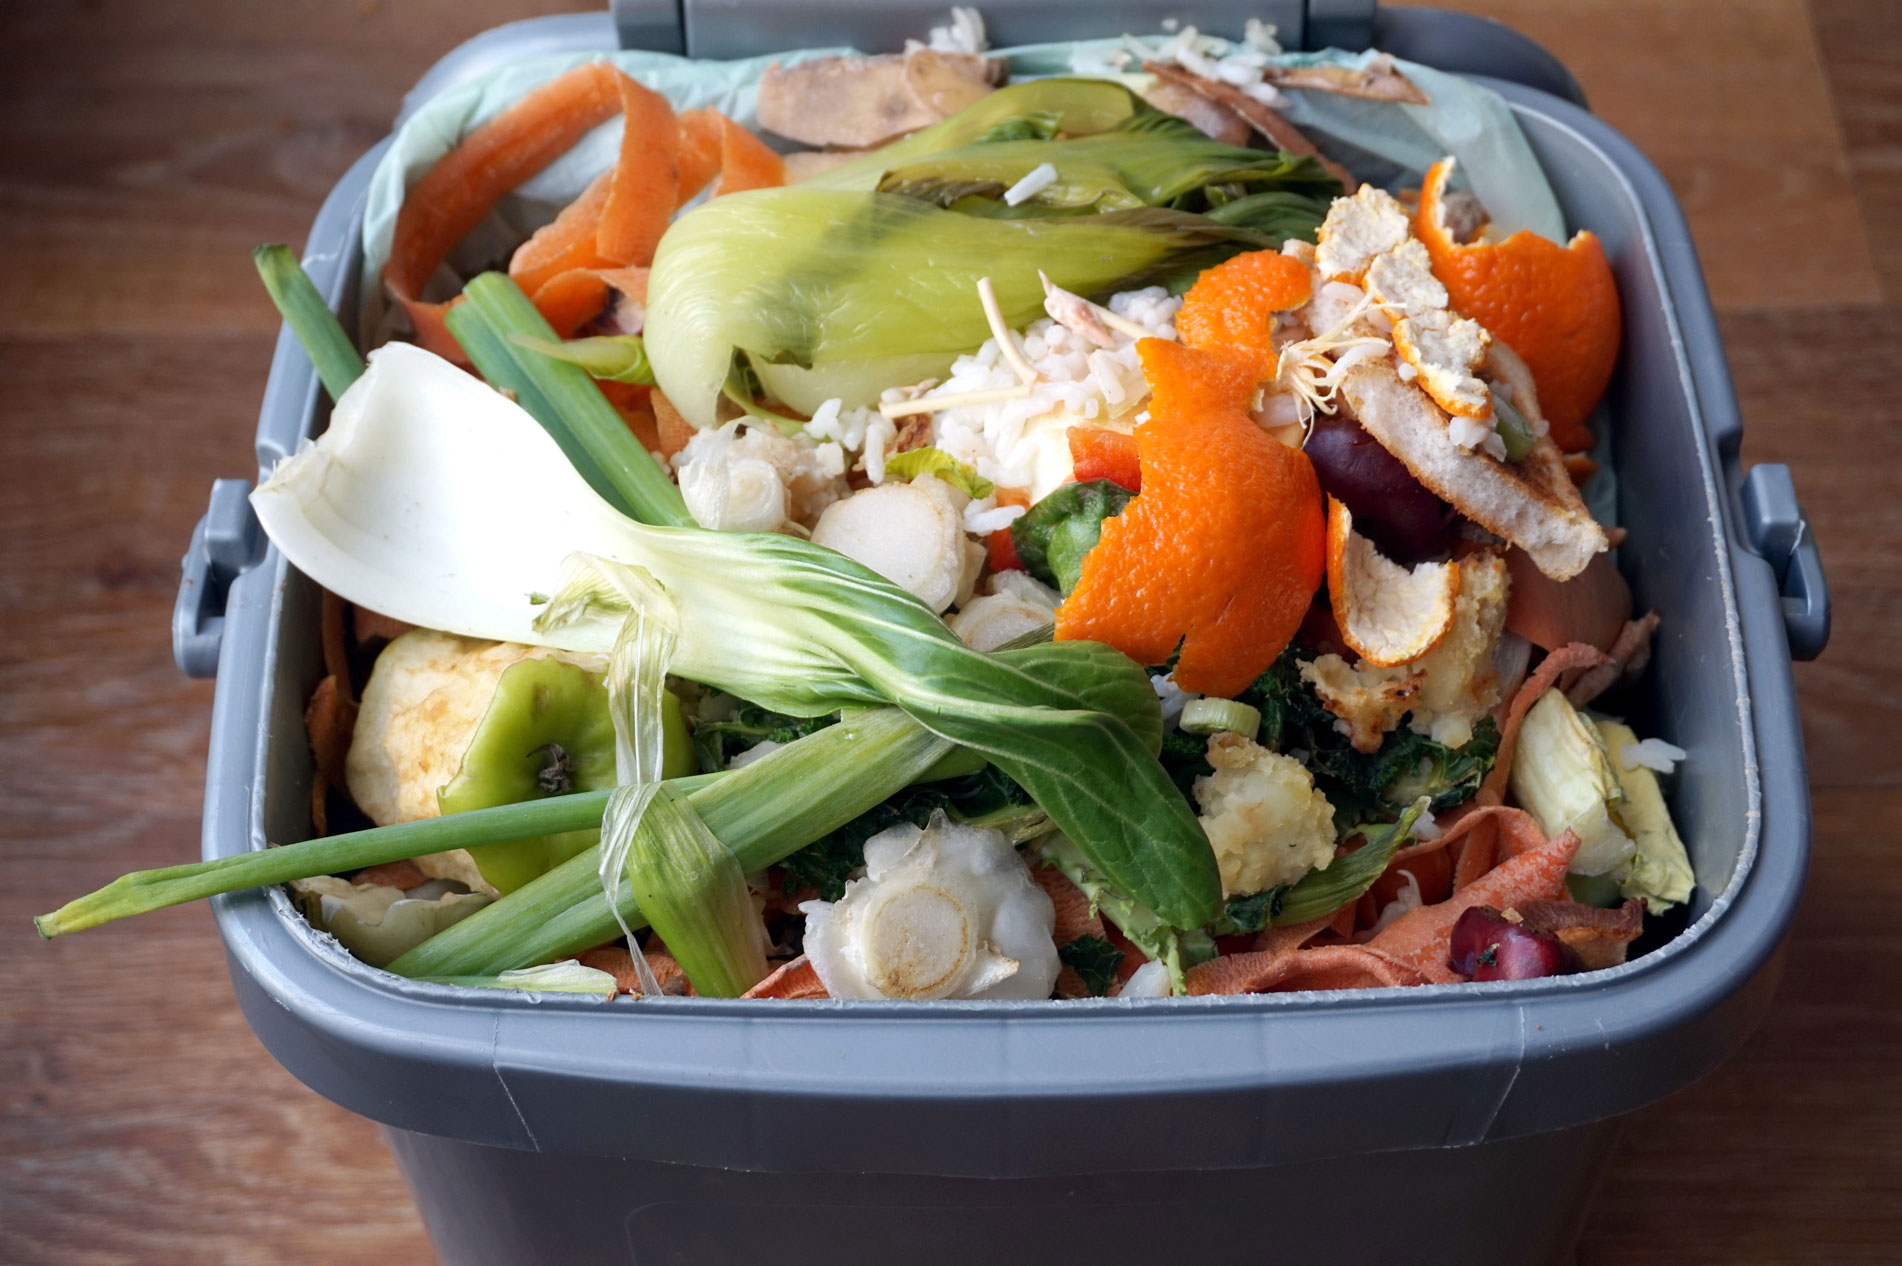 Use compost bins to prevent and reduce food waste